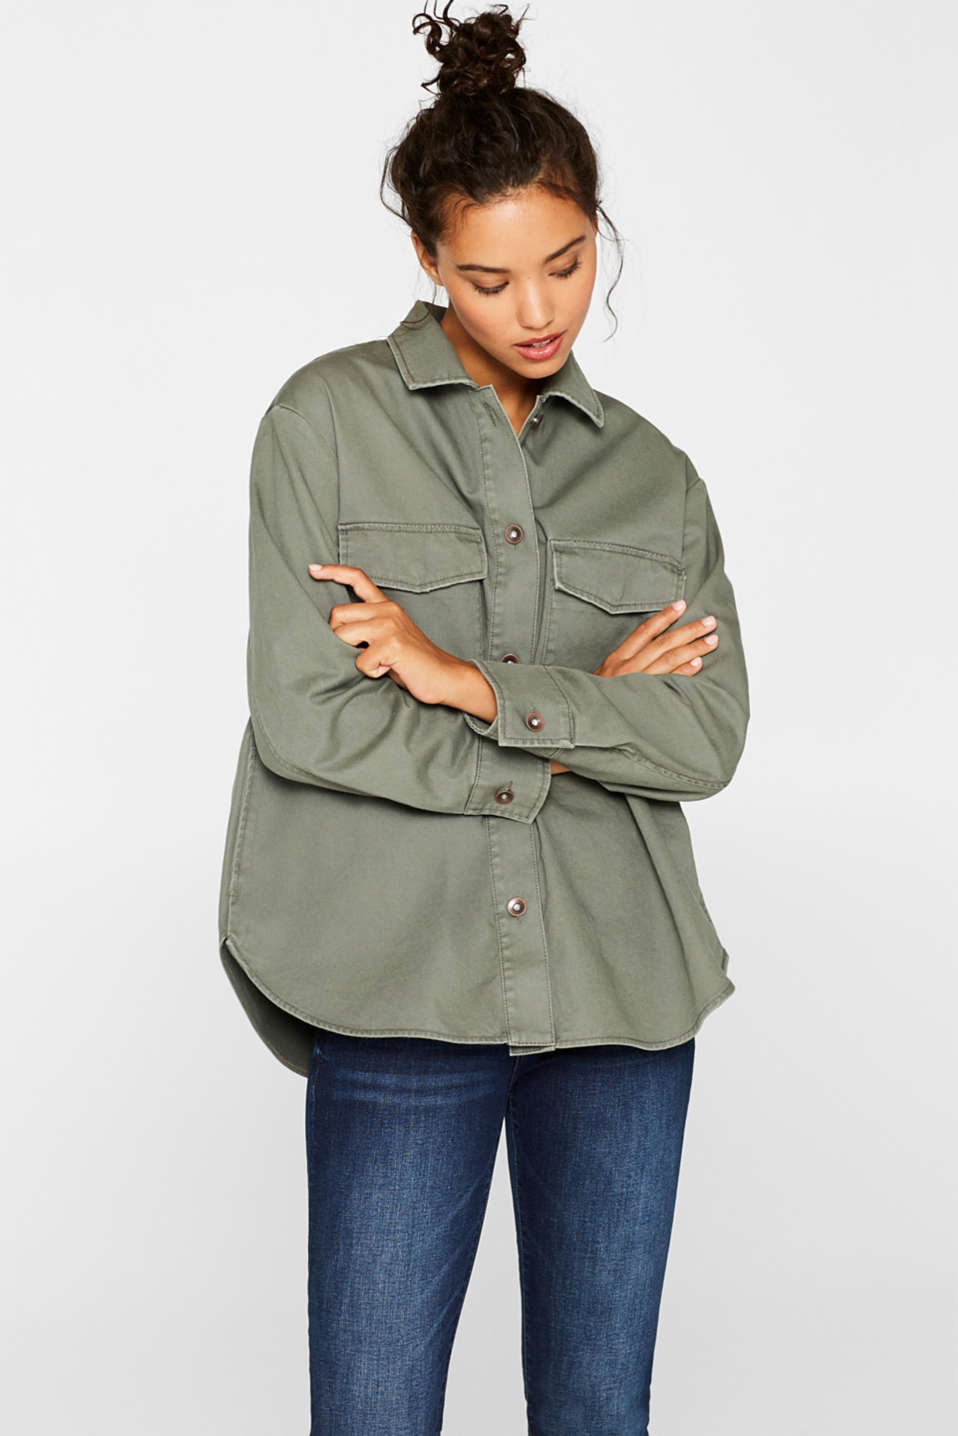 Esprit - Field jacket with a vintage finish, 100% cotton